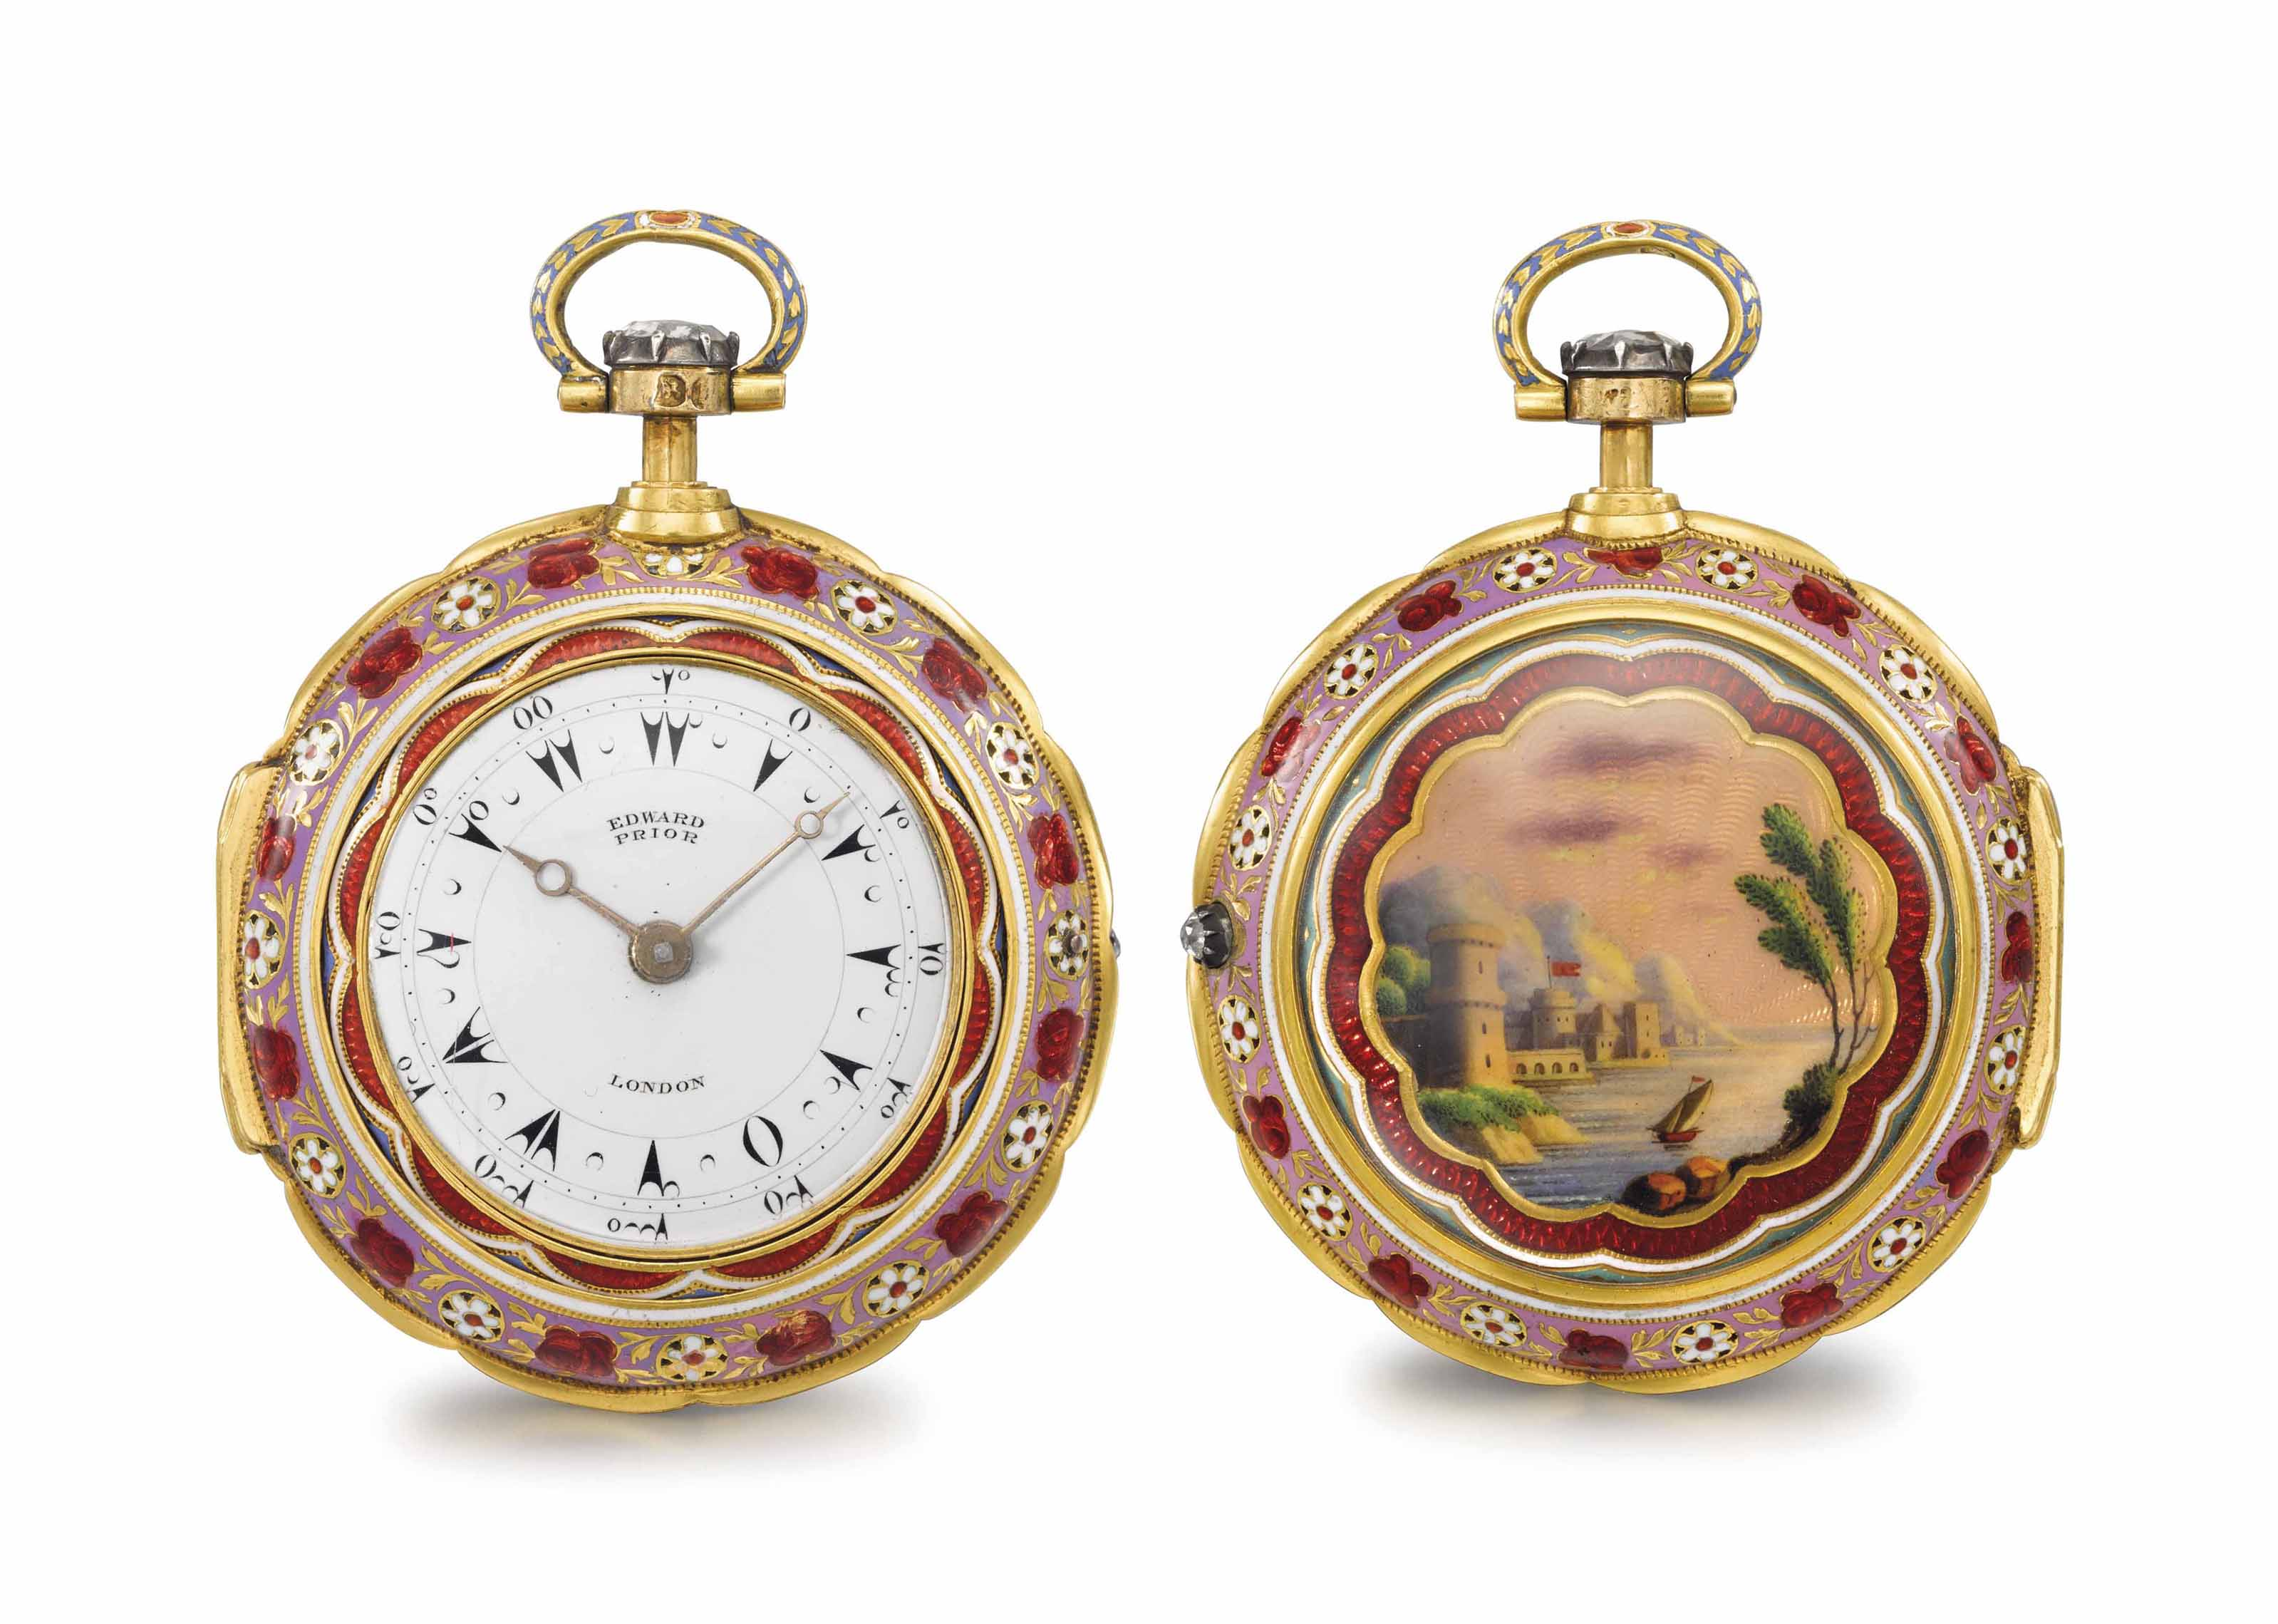 Edward Prior. A fine and rare 18K gold, diamond and enamel triple case quarter repeating keywound openface watch, made for the Turkish Market